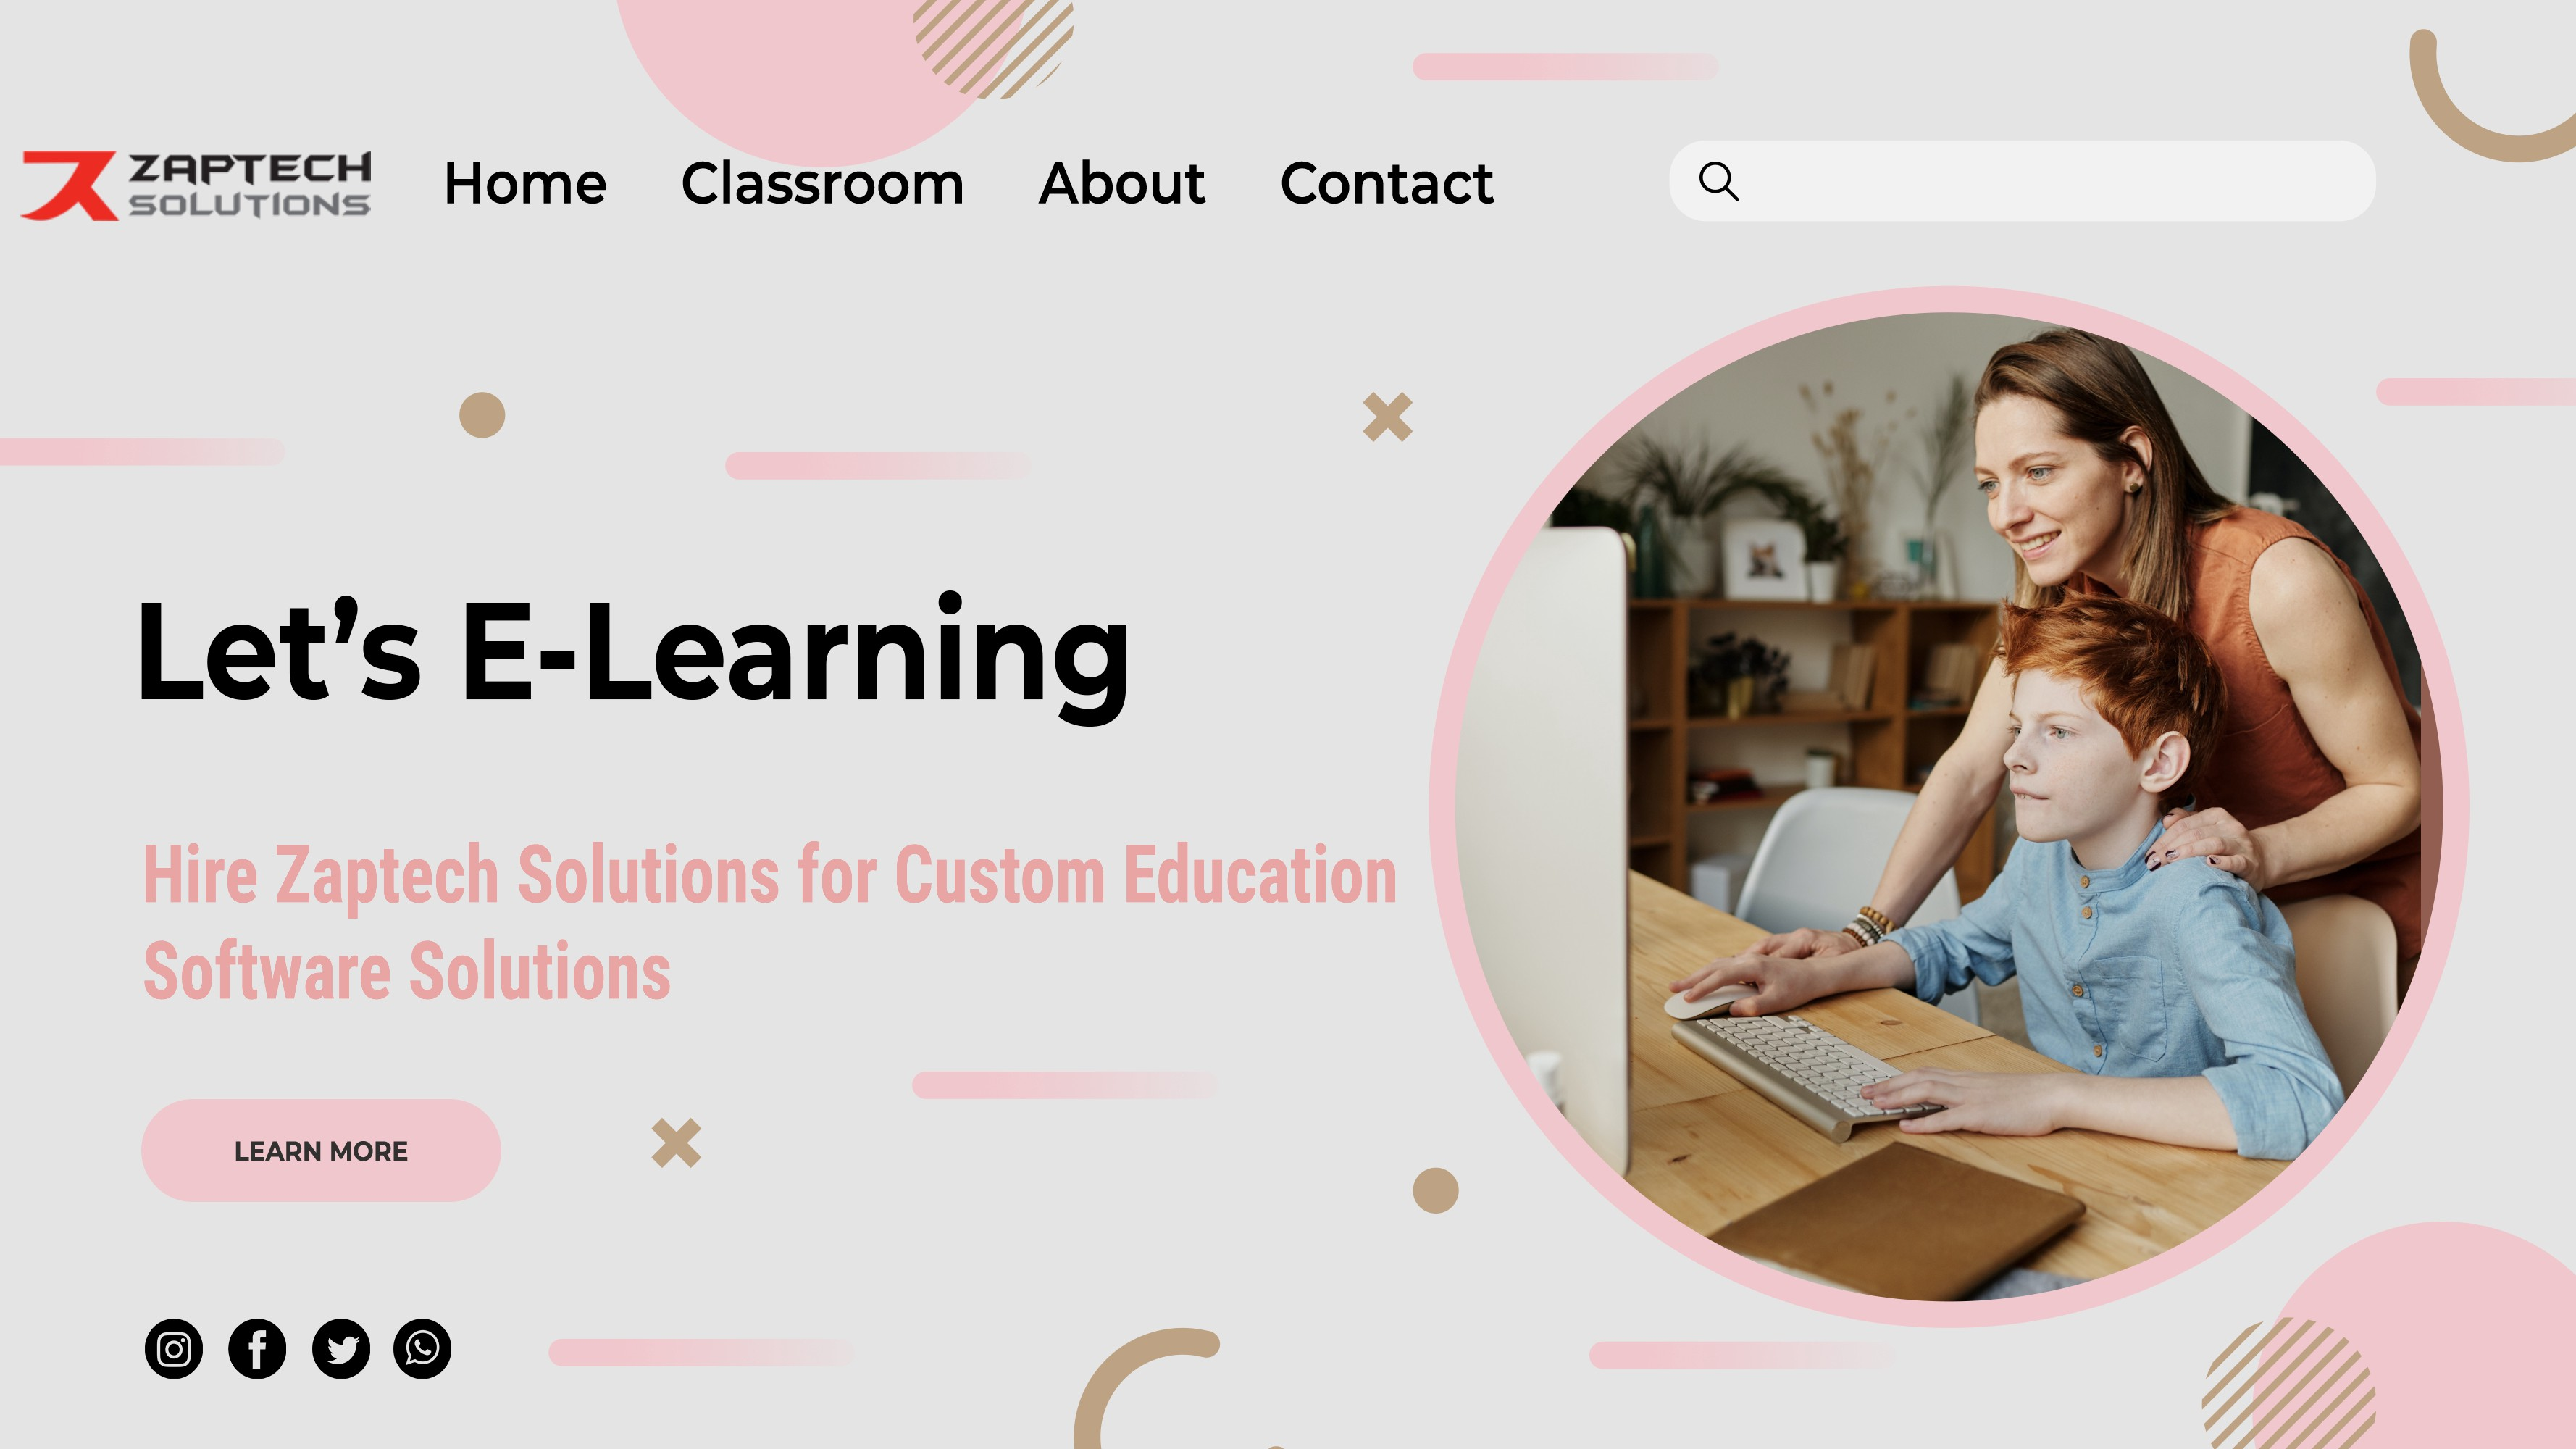 Zaptech Solutions Reviews: Why to Hire Zaptech Solutions for Custom Education Software Solutions?